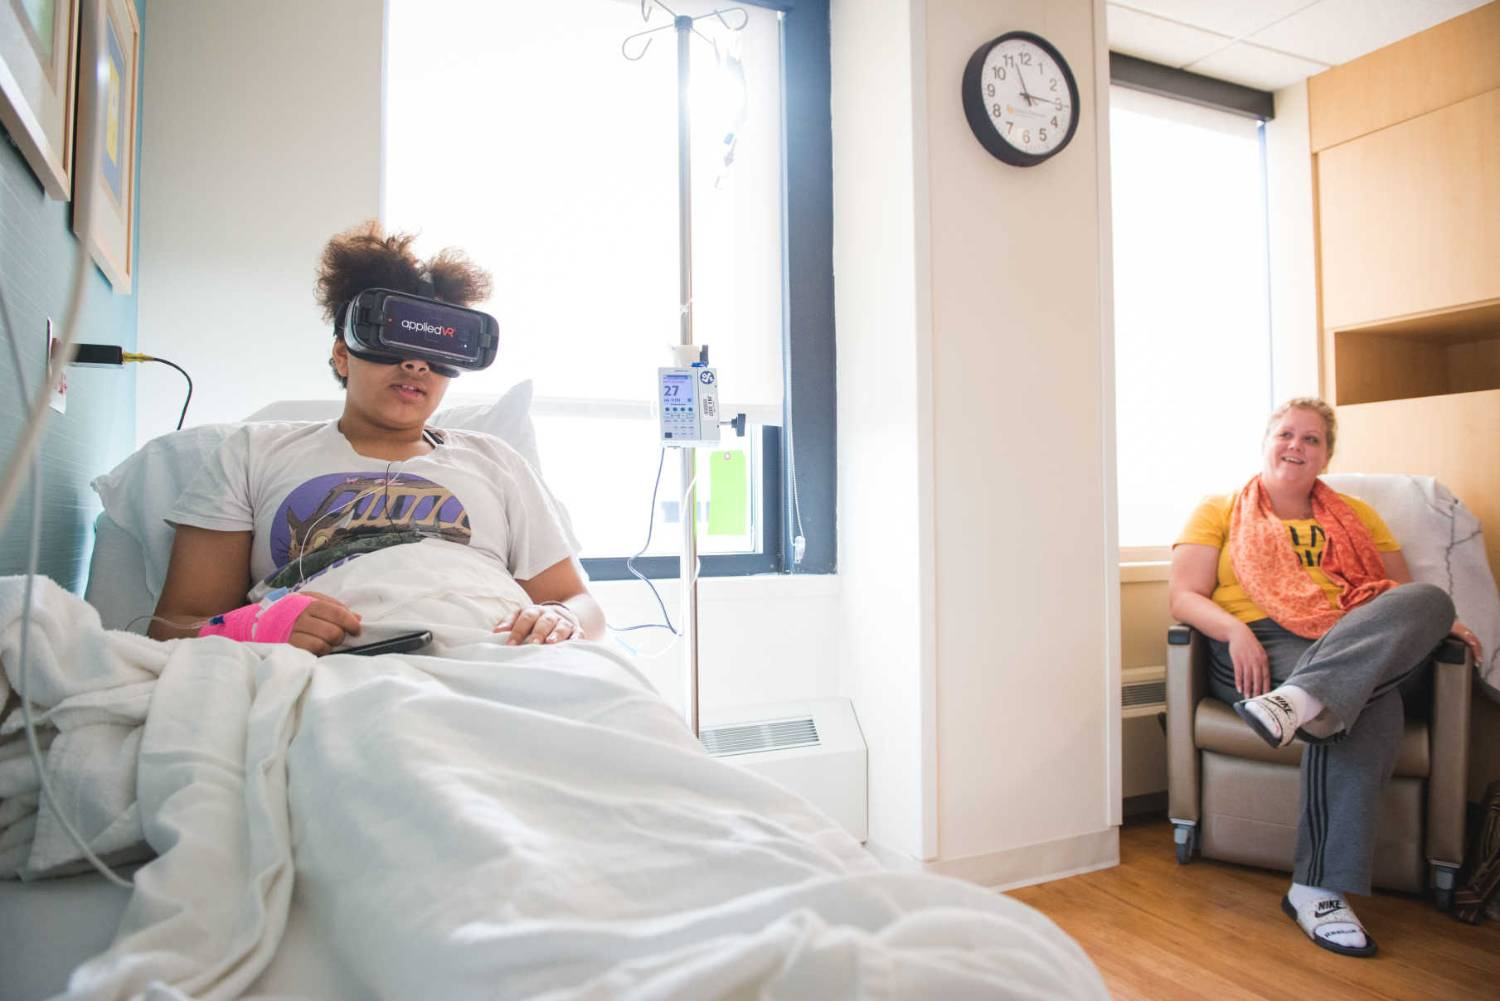 Olivia uses VR during her transfusion while her mother looks on